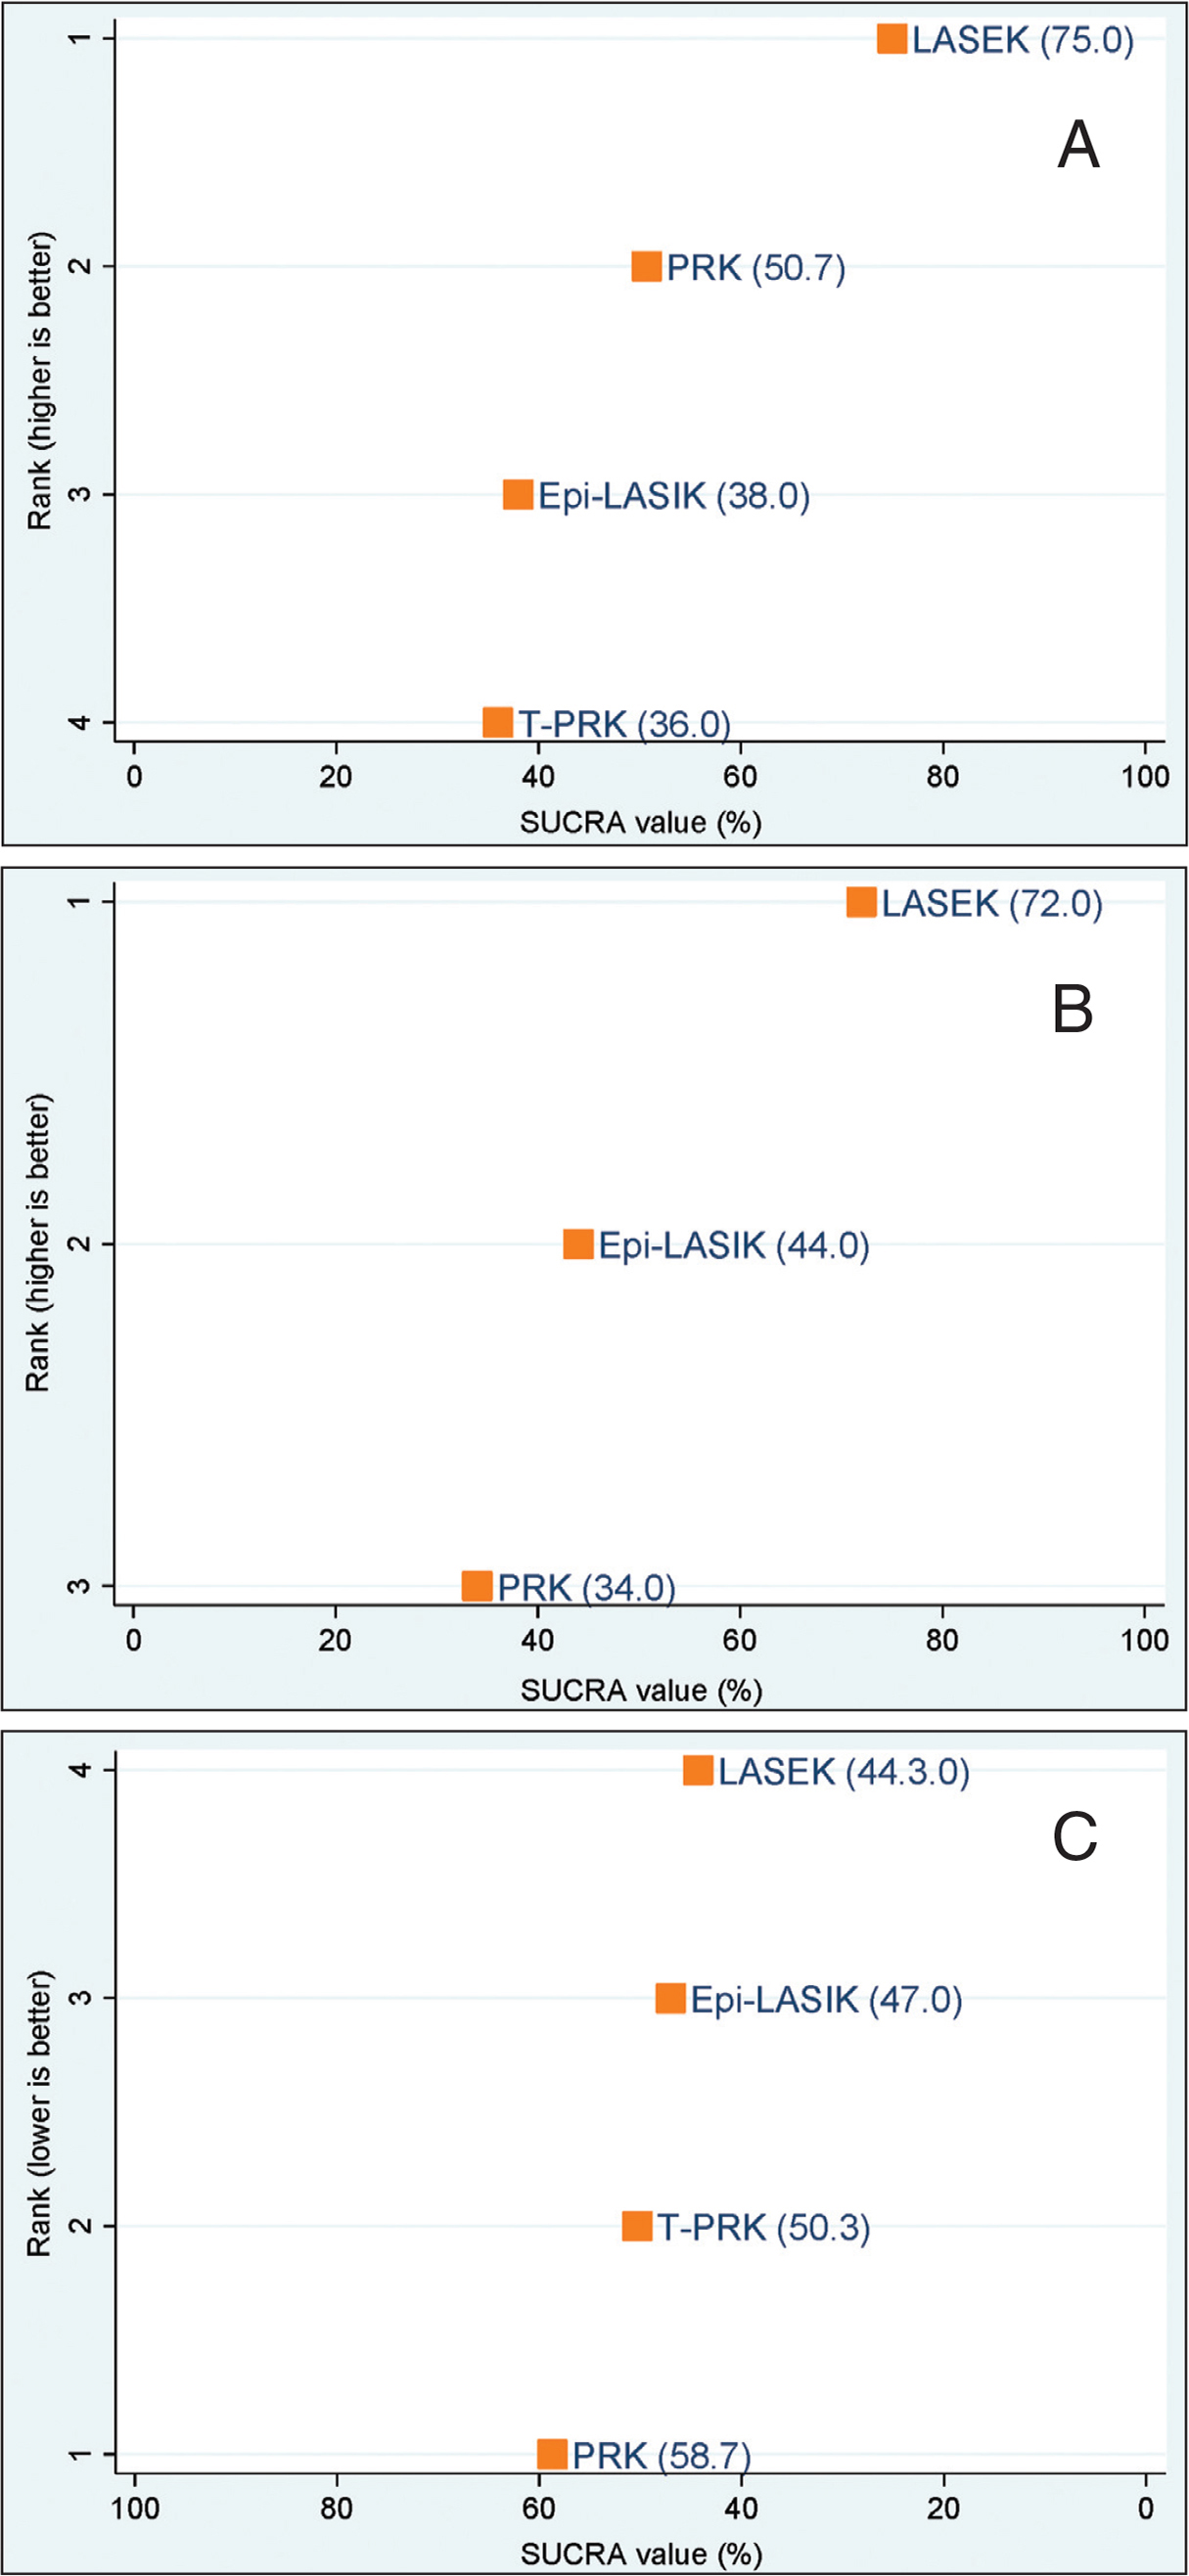 Ranking plot of the surface ablation surgery network based on surface under the cumulative ranking curve (SUCRA) values for (A) postoperative efficacy (uncorrected distance visual acuity [UDVA] of 20/20 or better), (B) predictability (refractive spherical equivalent [SE] within ±0.50 diopters [D] of the target refraction), and (C) safety (losing two or more lines of corrected distance visual acuity [CDVA]). epi-LASIK = epithelial laser in situ keratomileusis; LASEK = laser epithelial; PRK = photorefractive keratectomy; T-PRK = transepithelial photorefractive keratectomy